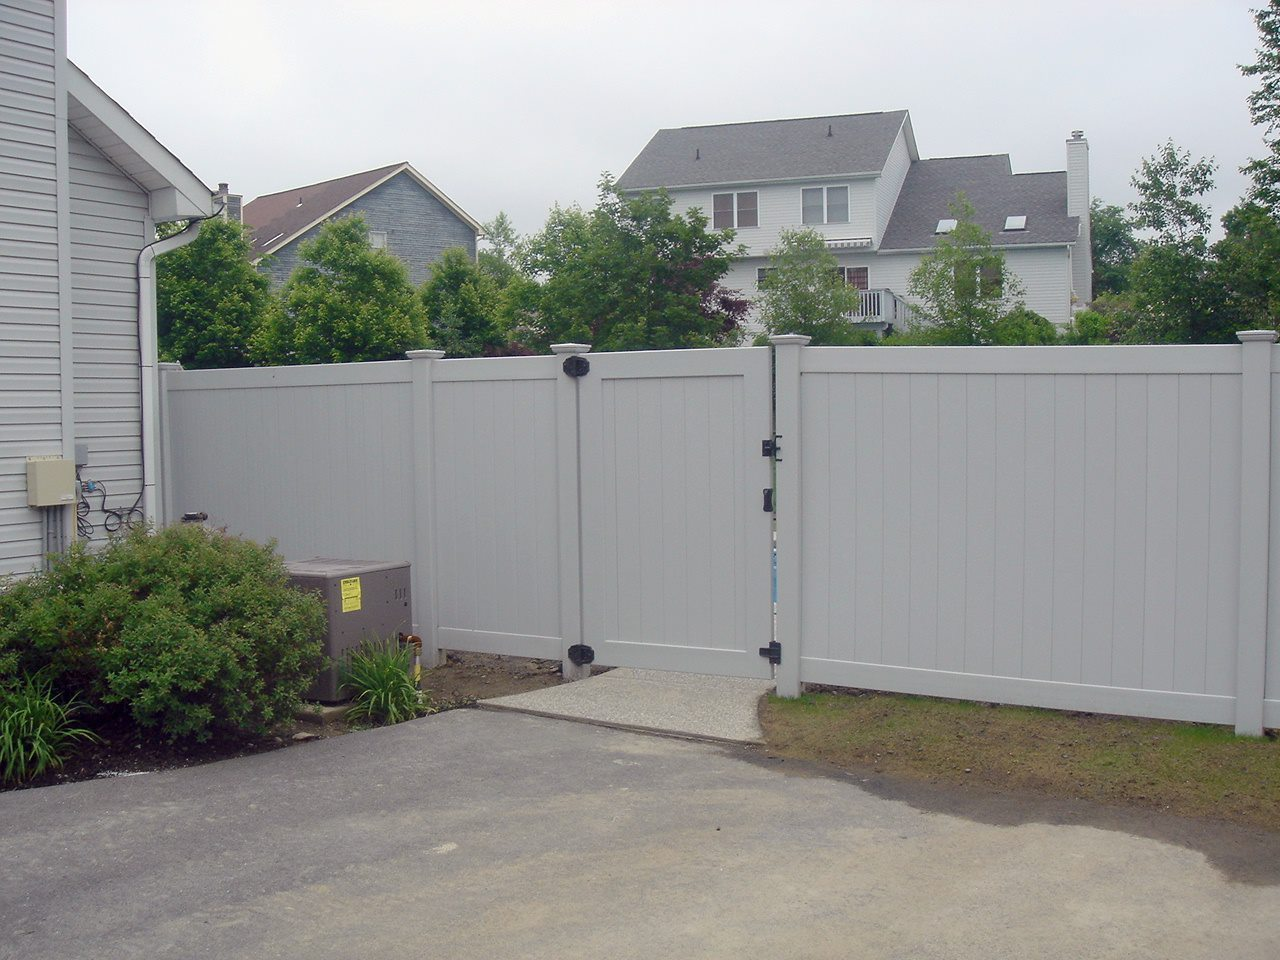 v300 4 u0027 swing gate installed in gray privacy fence with new